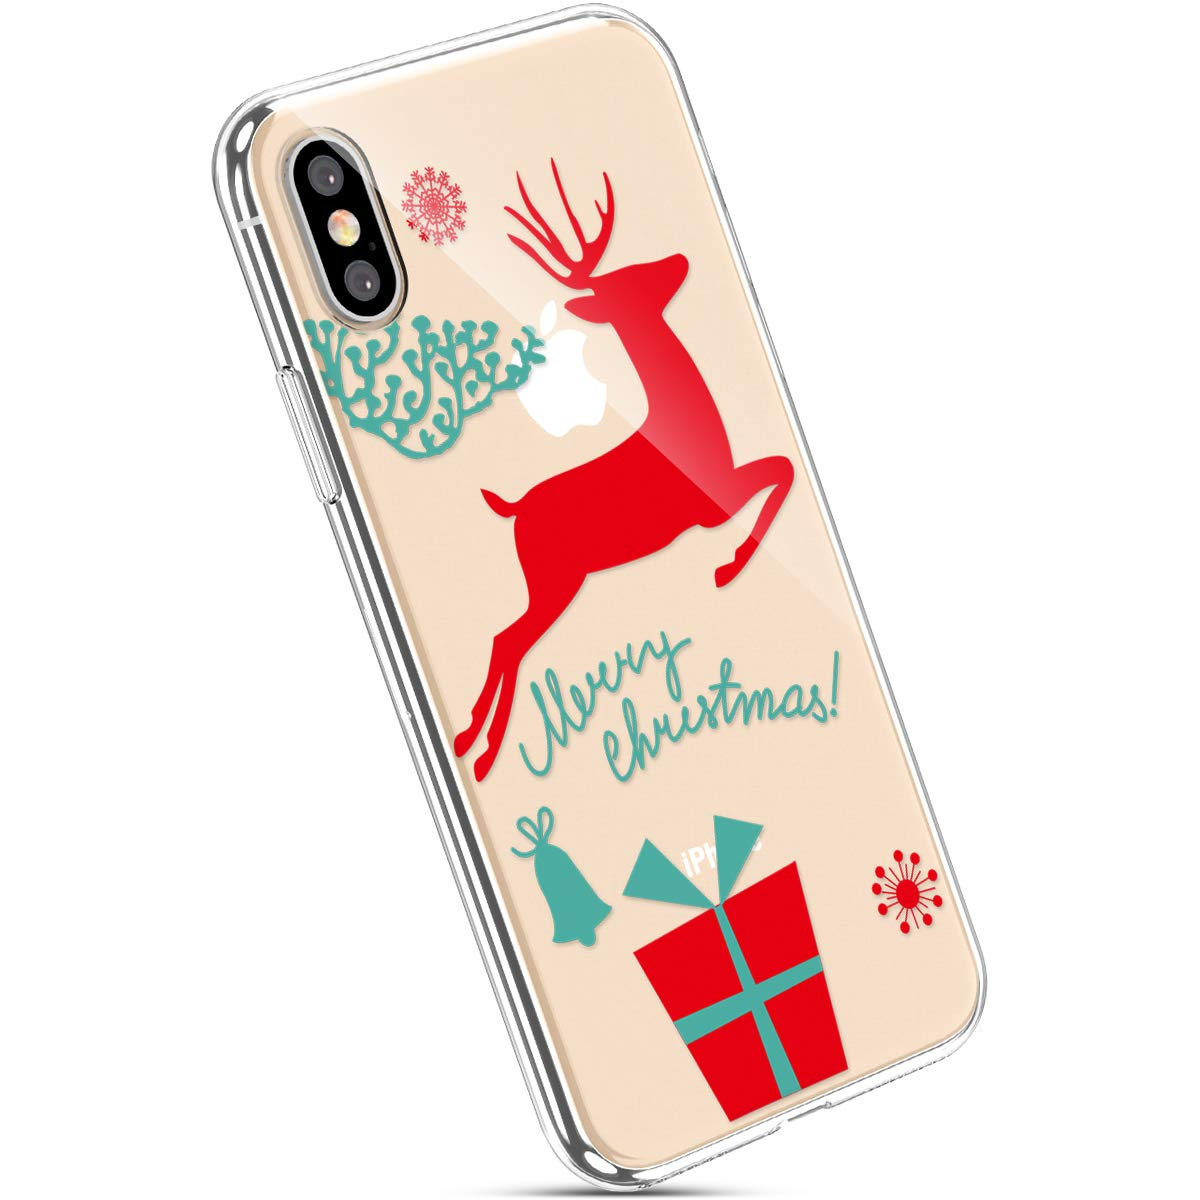 Ysimee Coque iPhone X Noë l, É tui Transparent avec Motif Christmas Housse de Protection en Silicone Souple Antichoc Ultra Mince et Lé ger Crystal Clear Gel Coque pour iPhone X,Motif#2